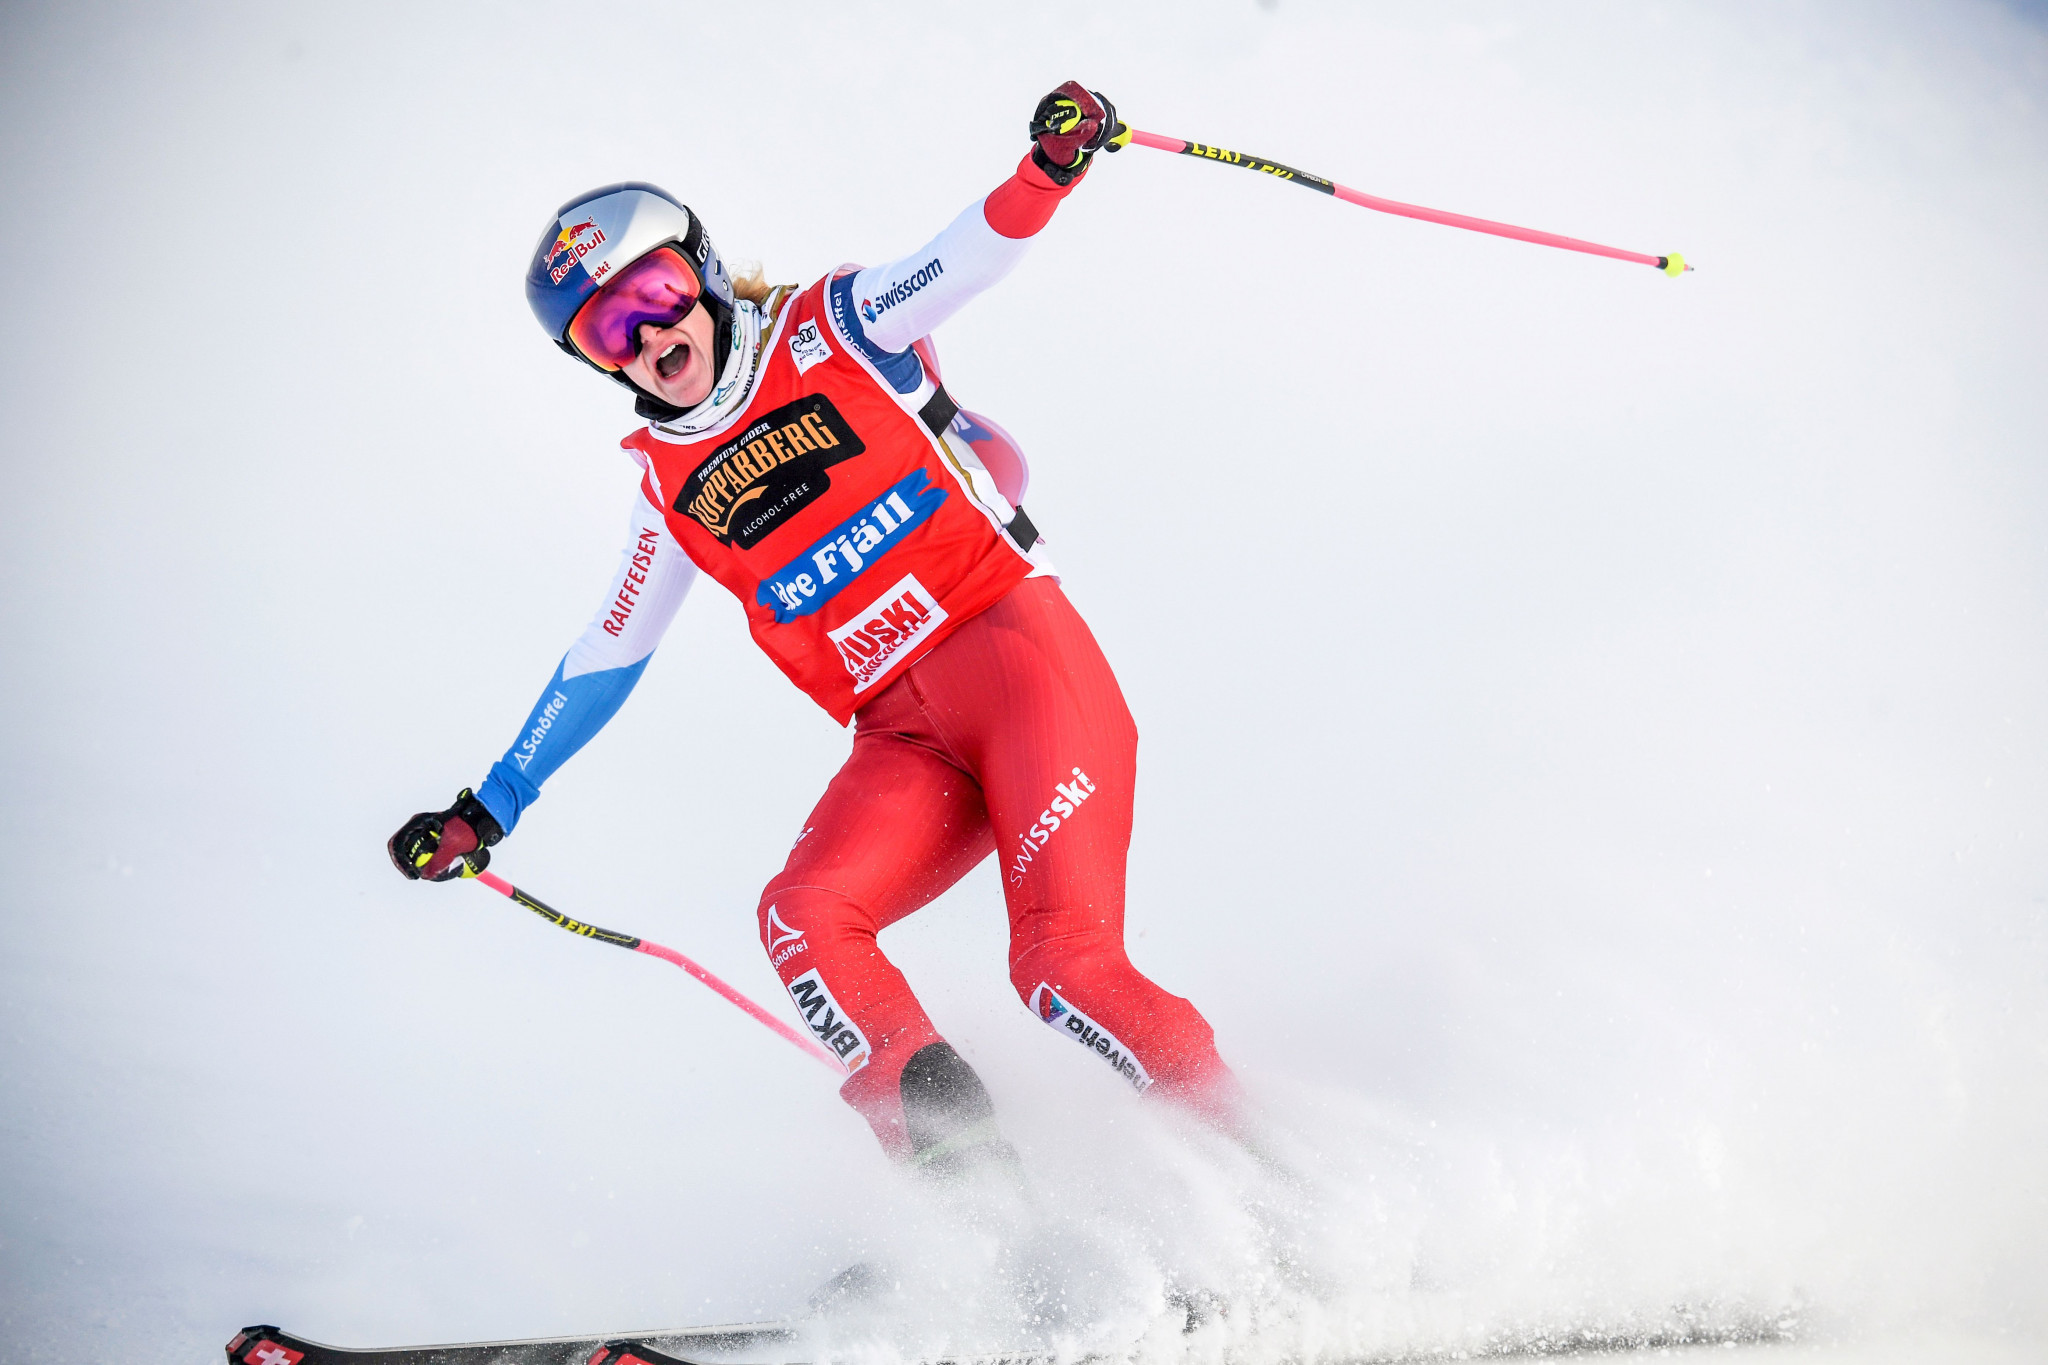 Photo-finish win in Bakuriani earns Smith third FIS Ski Cross World Cup title